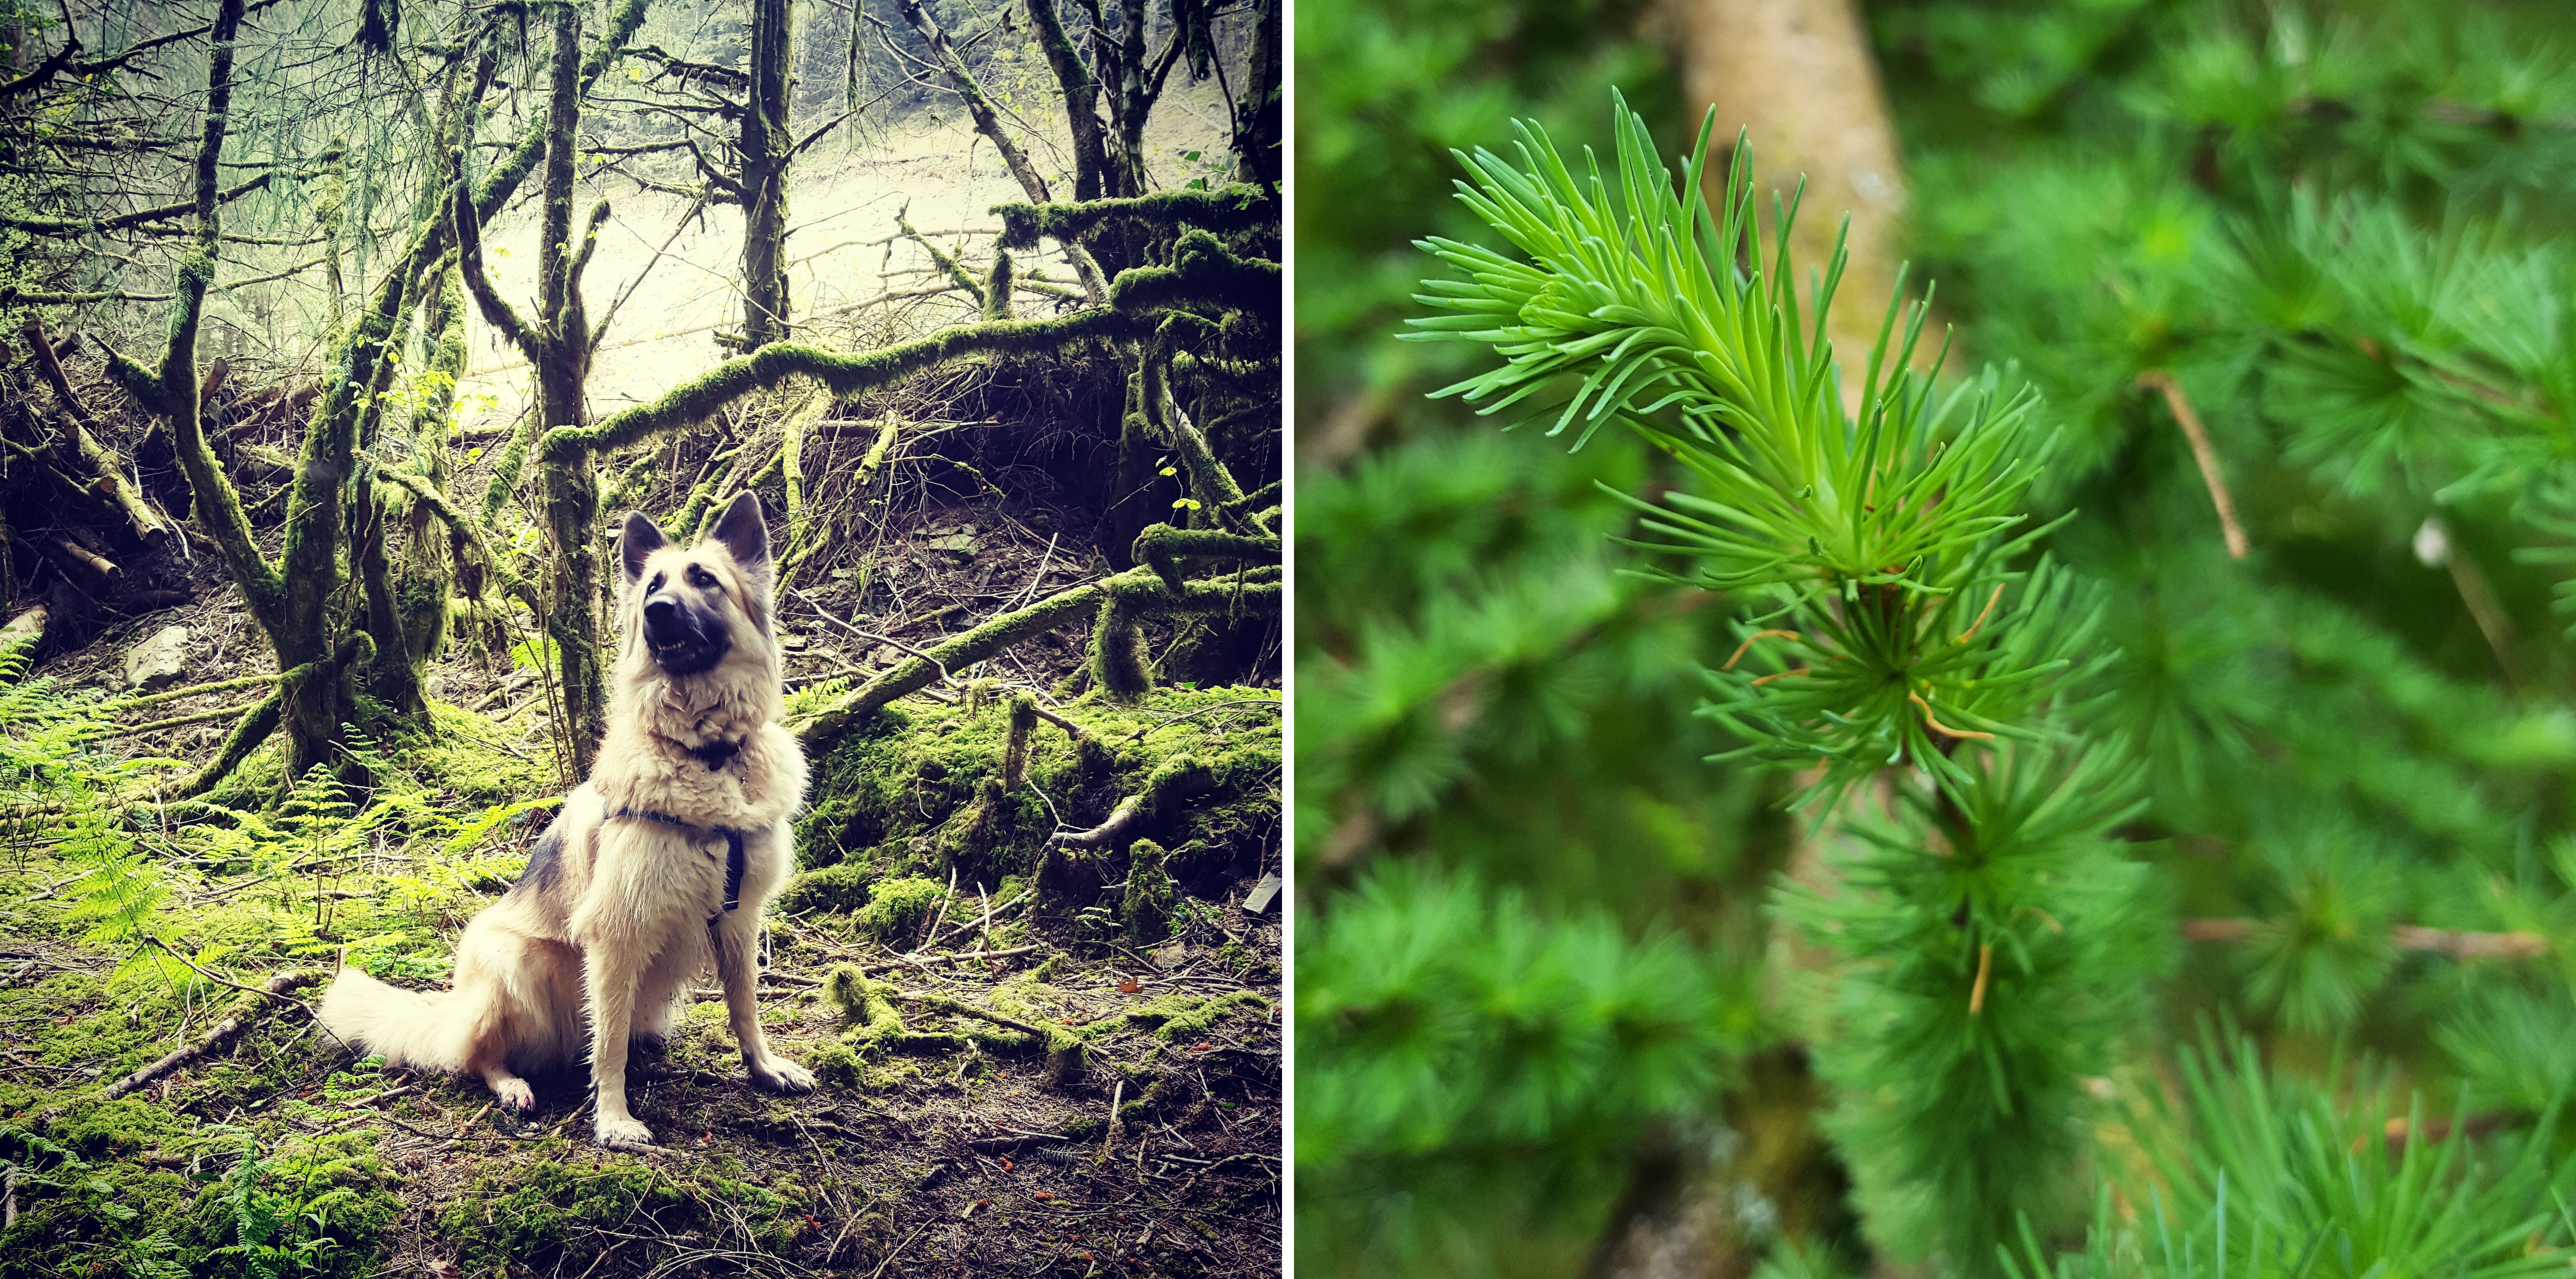 Images of May Brechfa Forest trees and a dog